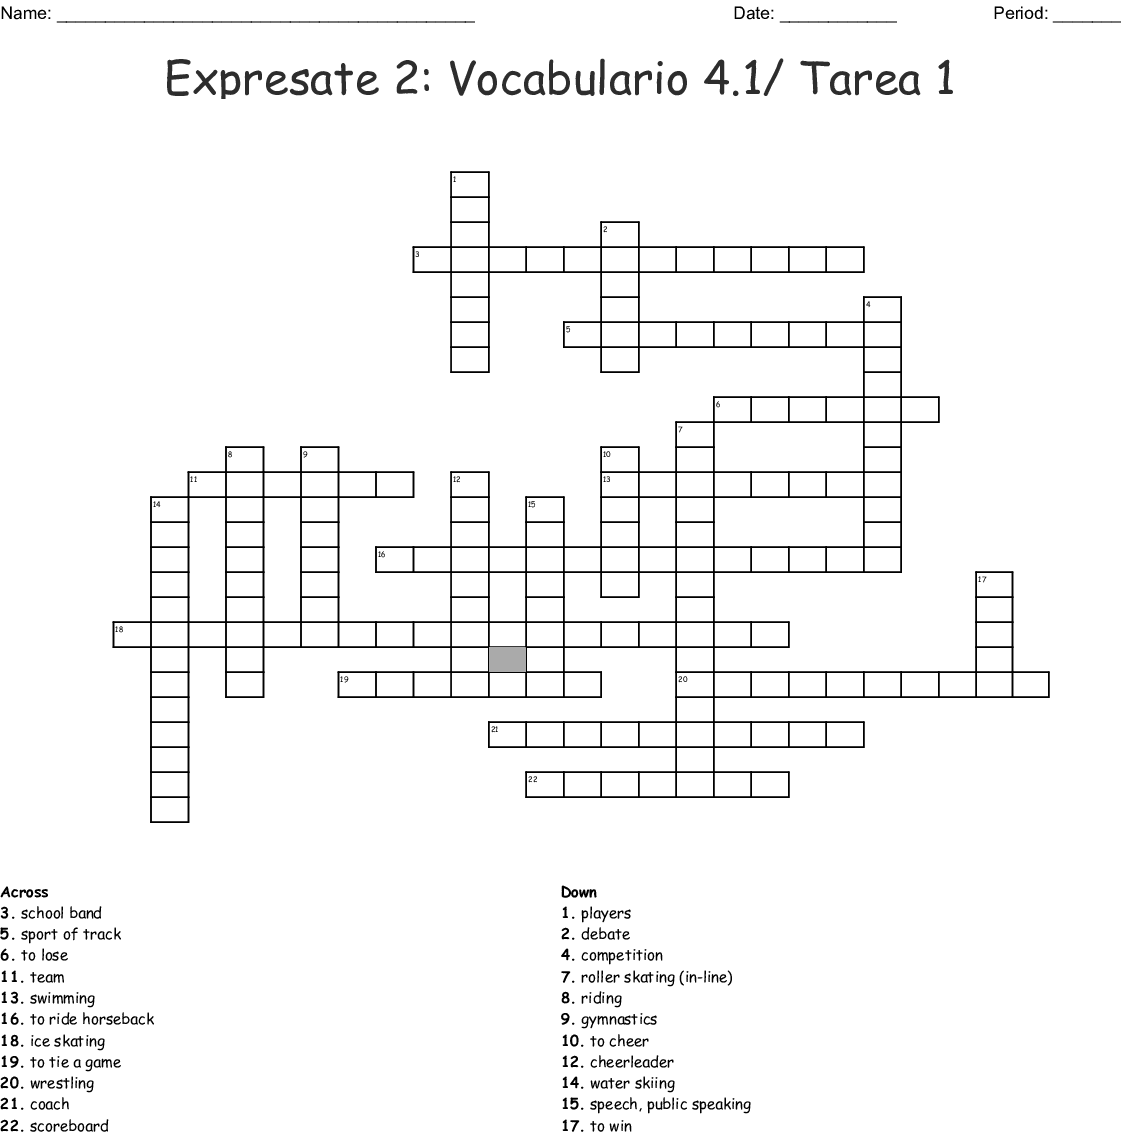 Crossword Expresate Level 3 Answers